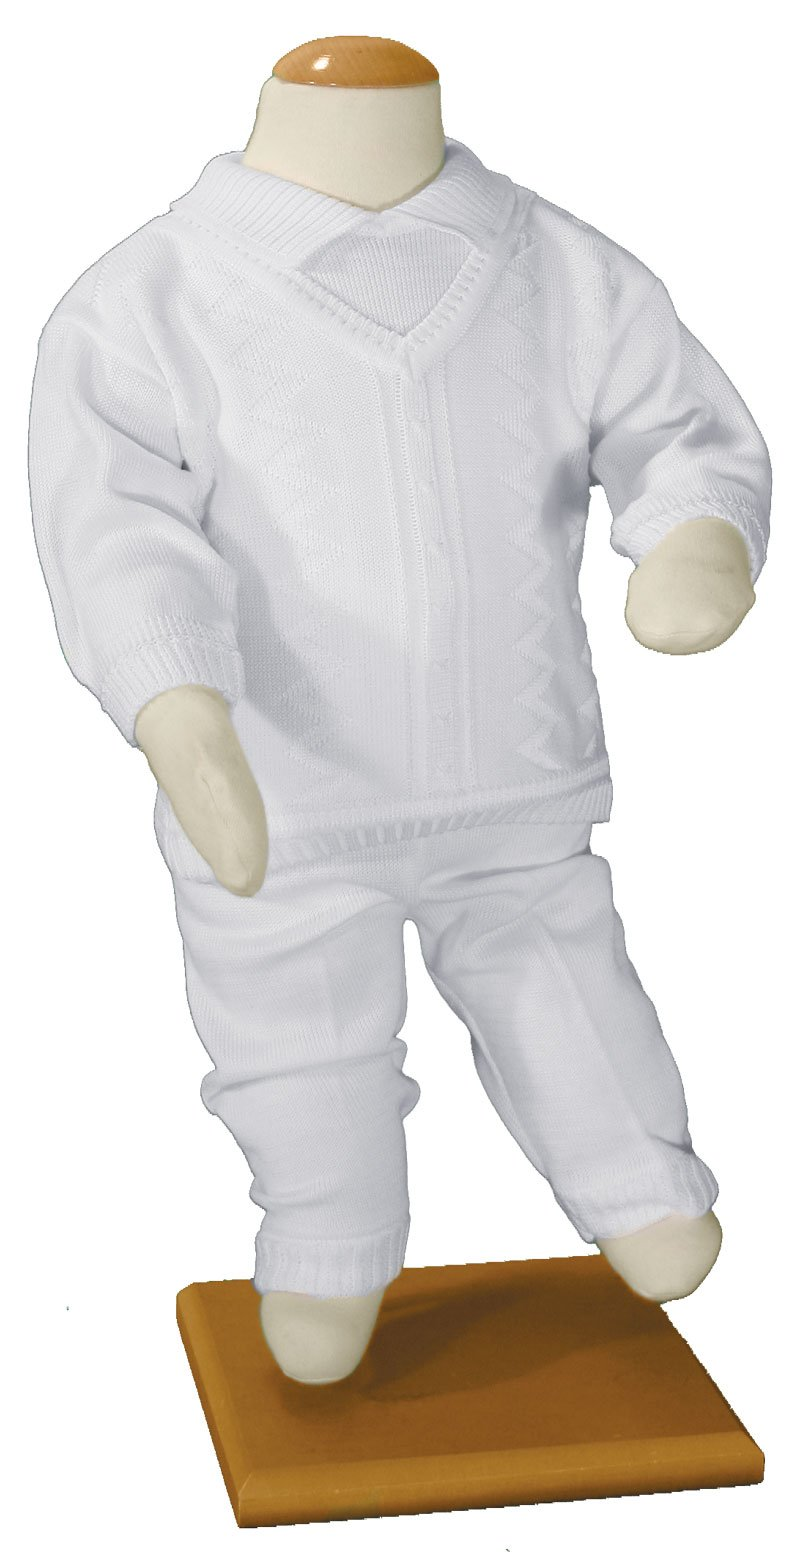 Boys 100% Cotton Knit Two Piece White Christening Baptism Outfit, 03 Month by Little Things Mean A Lot (Image #3)